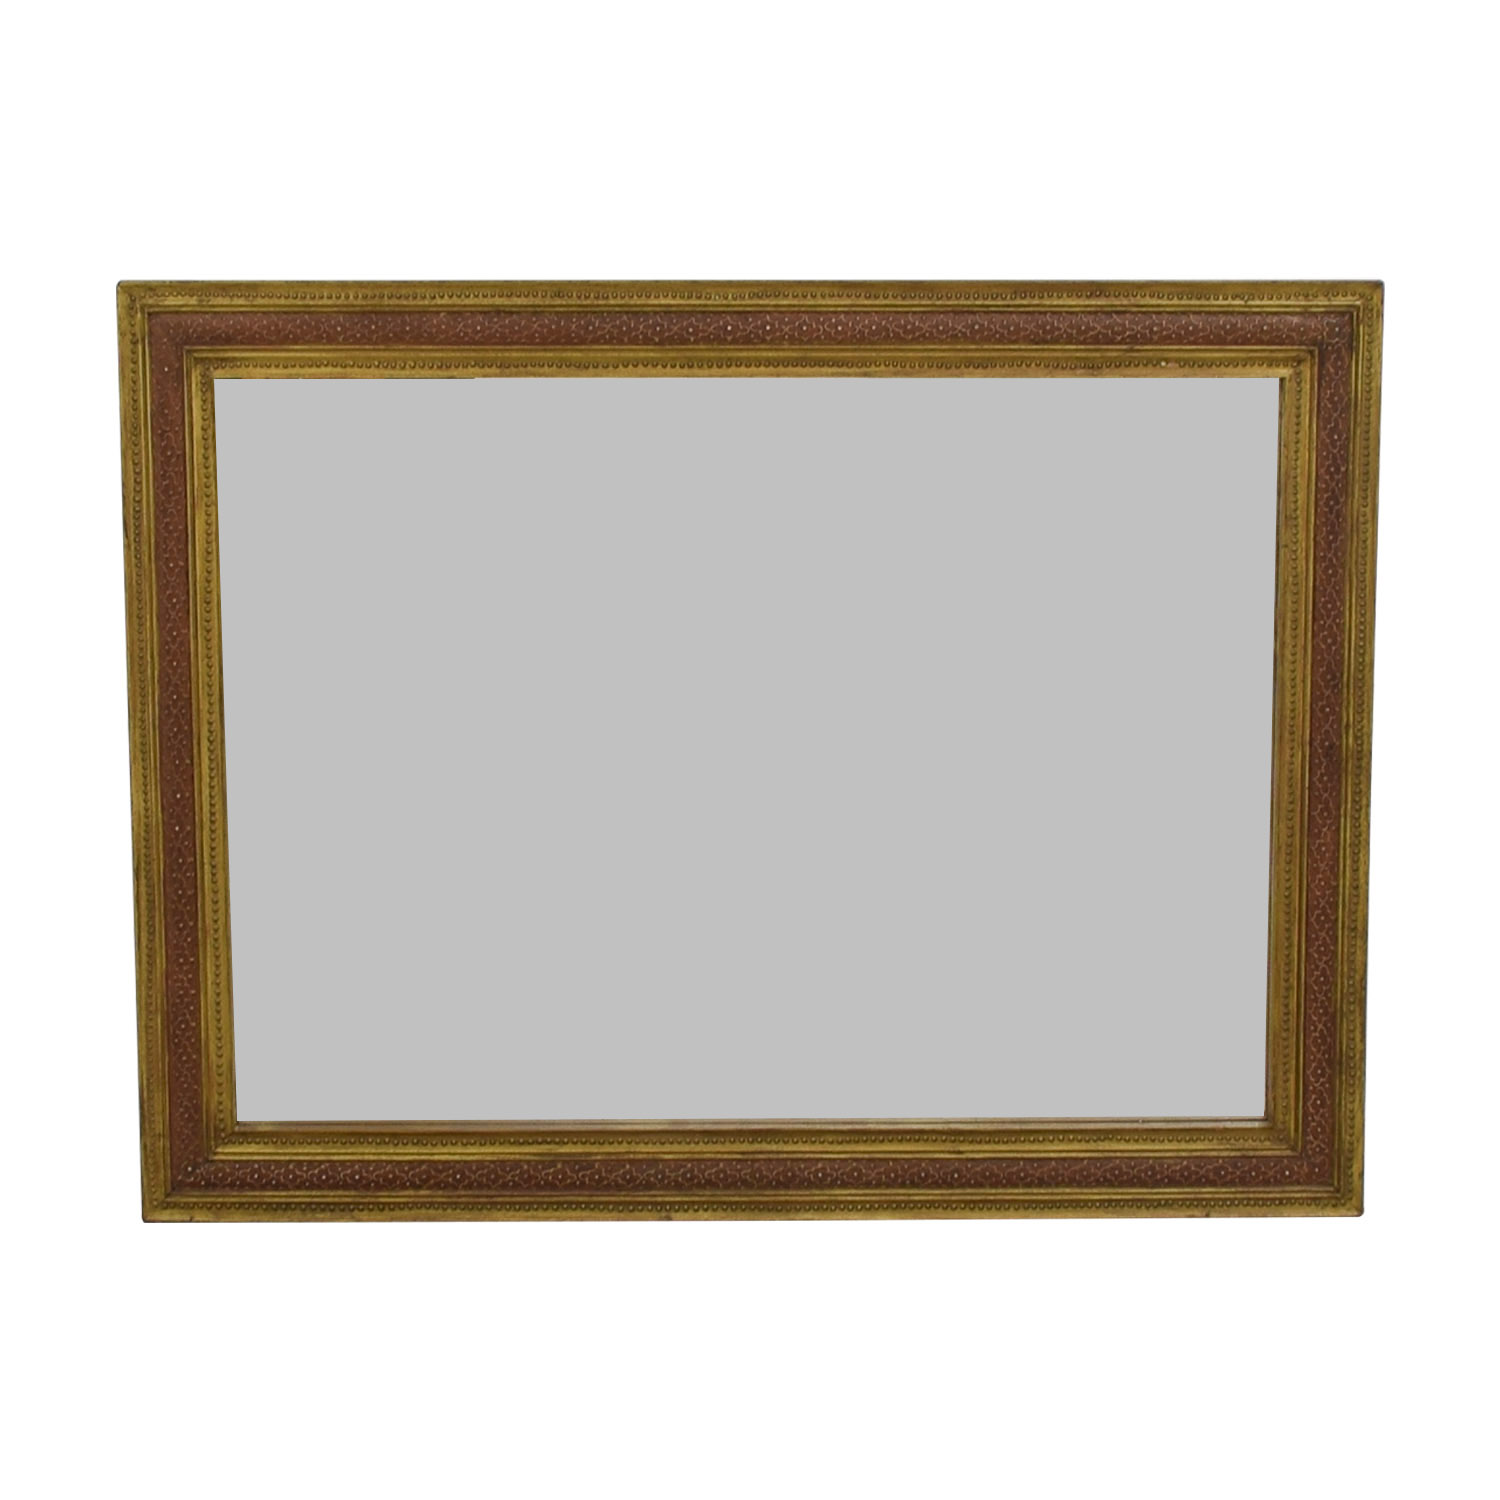 Antique Gold Framed Mirror on sale